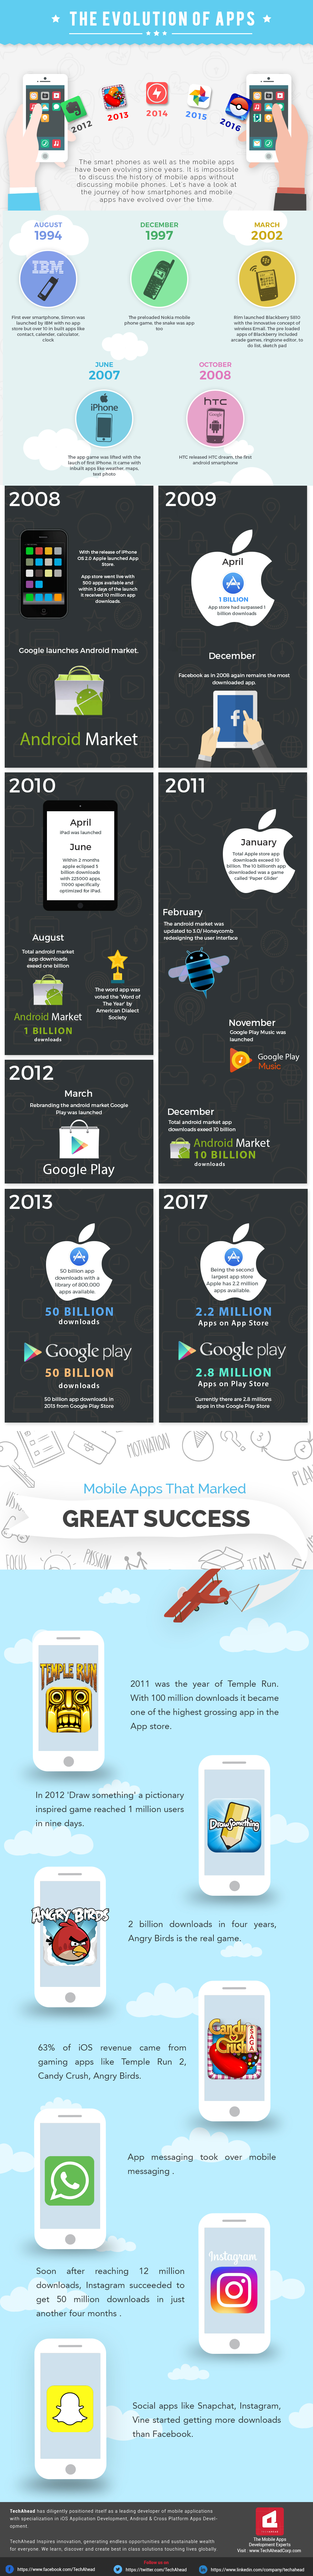 The Evolution of Apps - And What's Coming Next [Infographic] | Social Media Today